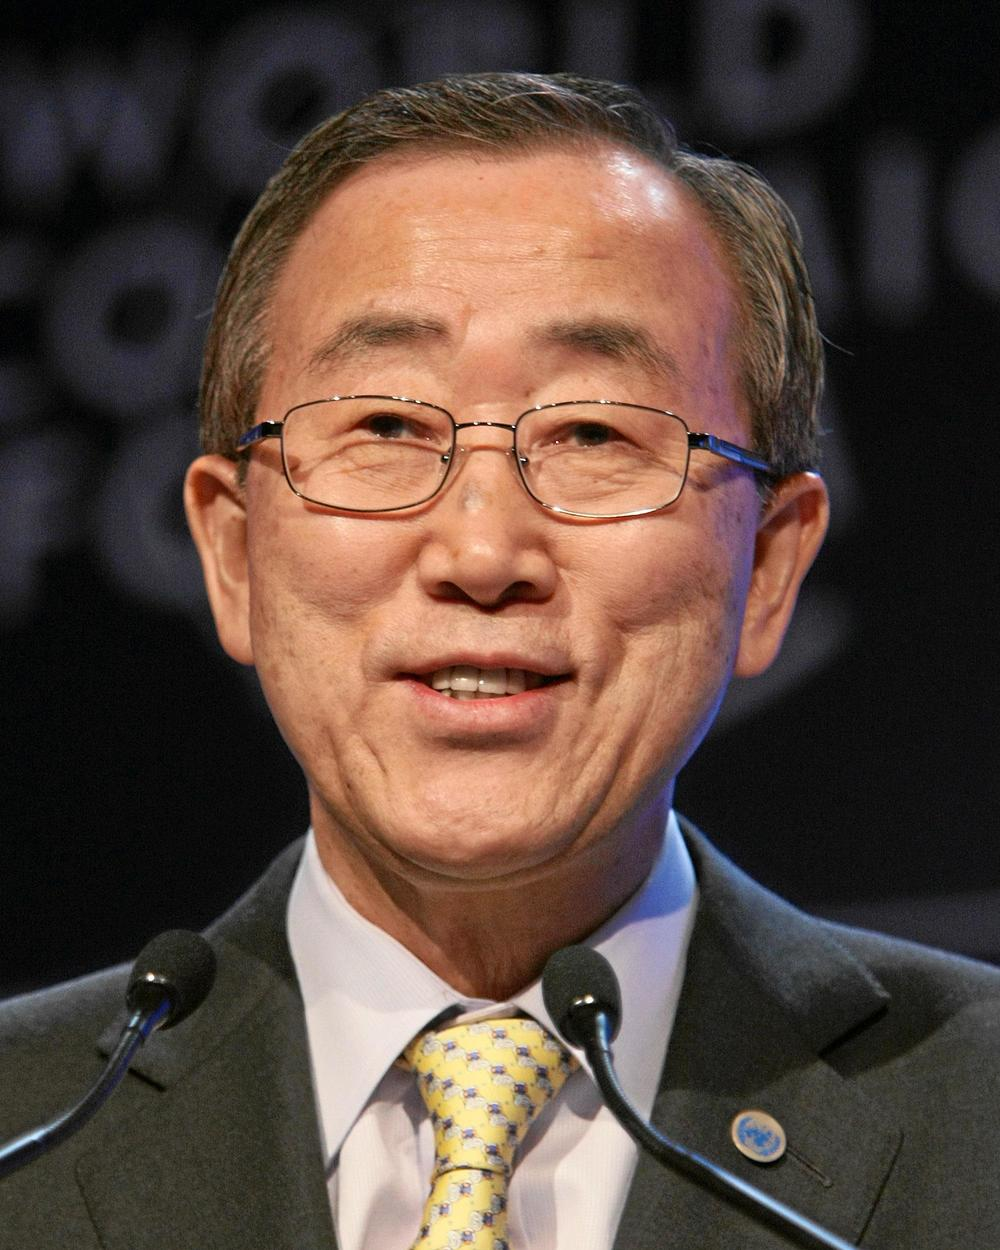 U.N. Secretary-General Ban Ki-moon. Credit: World Economic Forum.